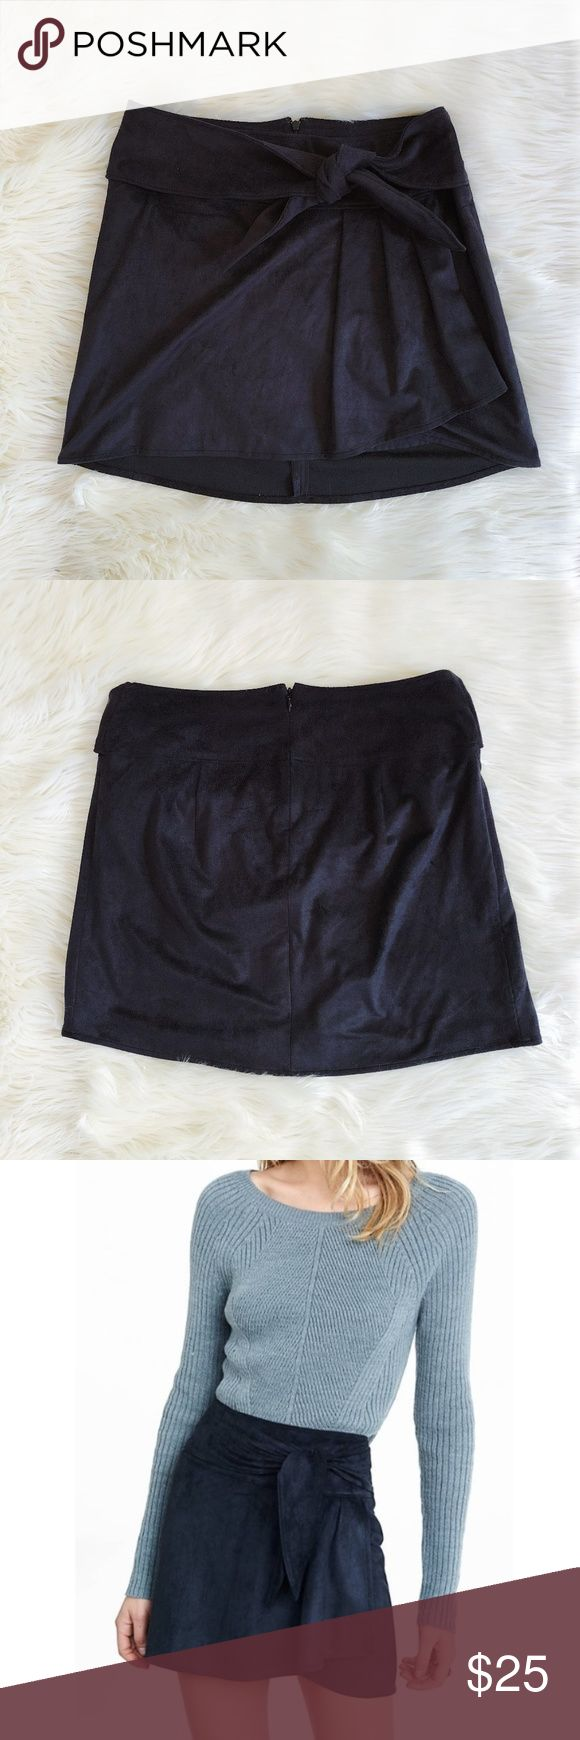 "NWT EXPRESS Faux Suede Wrap Tie Waist Mini Skirt EXPRESS MINI SKIRT  -SIZE 6 -FAUX SUEDE -BLACK -WRAP STYLE -SLIGHT HIGH/LOW HEM -TIE WAIST THAT COULD BE TIED IN THE FRONT OR BACK -LINED -ZIPPER BACK FOR EASY ON/OFF -88% POLYESTER, 12% SPANDEX -MACHINE WASHABLE  APPROXIMATE MEASUREMENTS: -15.5"" WAIST LAYING FLAT -17"" TOP TO BOTTOM (BACK SIDE) -6.5"" ZIPPER  -BRAND NEW WITH TAGS (ORIGINALLY $49.90) Express Skirts Mini"